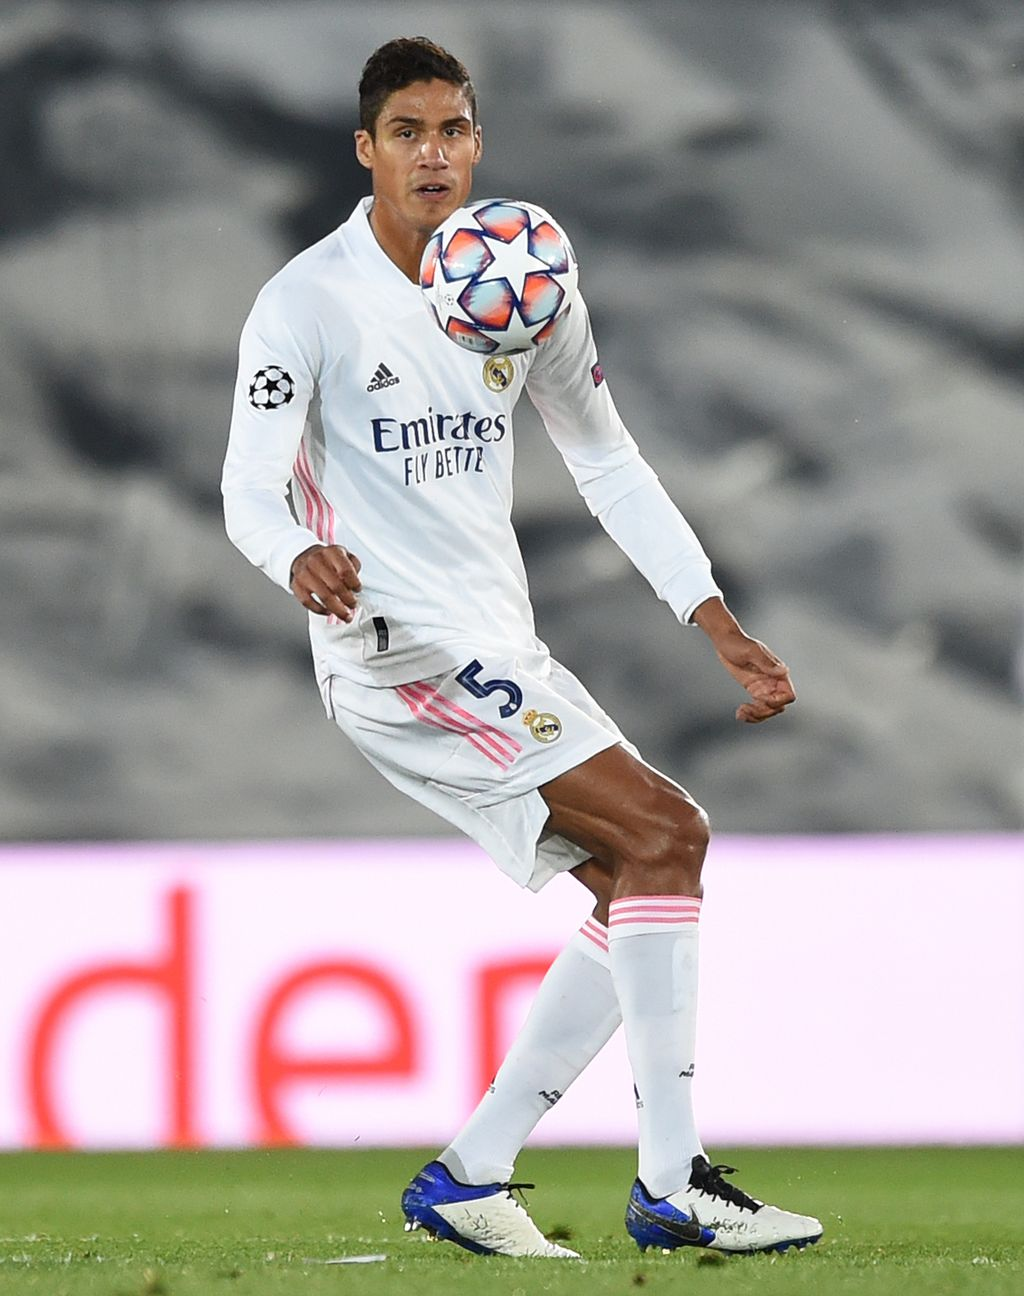 MADRID, SPAIN - OCTOBER 21: Raphael Varane of Real Madrid CF controls the ball during the UEFA Champions League Group B stage match between Real Madrid and Shakhtar Donetsk at Estadio Alfredo De Stefano on October 21, 2020 in Madrid, Spain. (Photo by Denis Doyle/Getty Images)